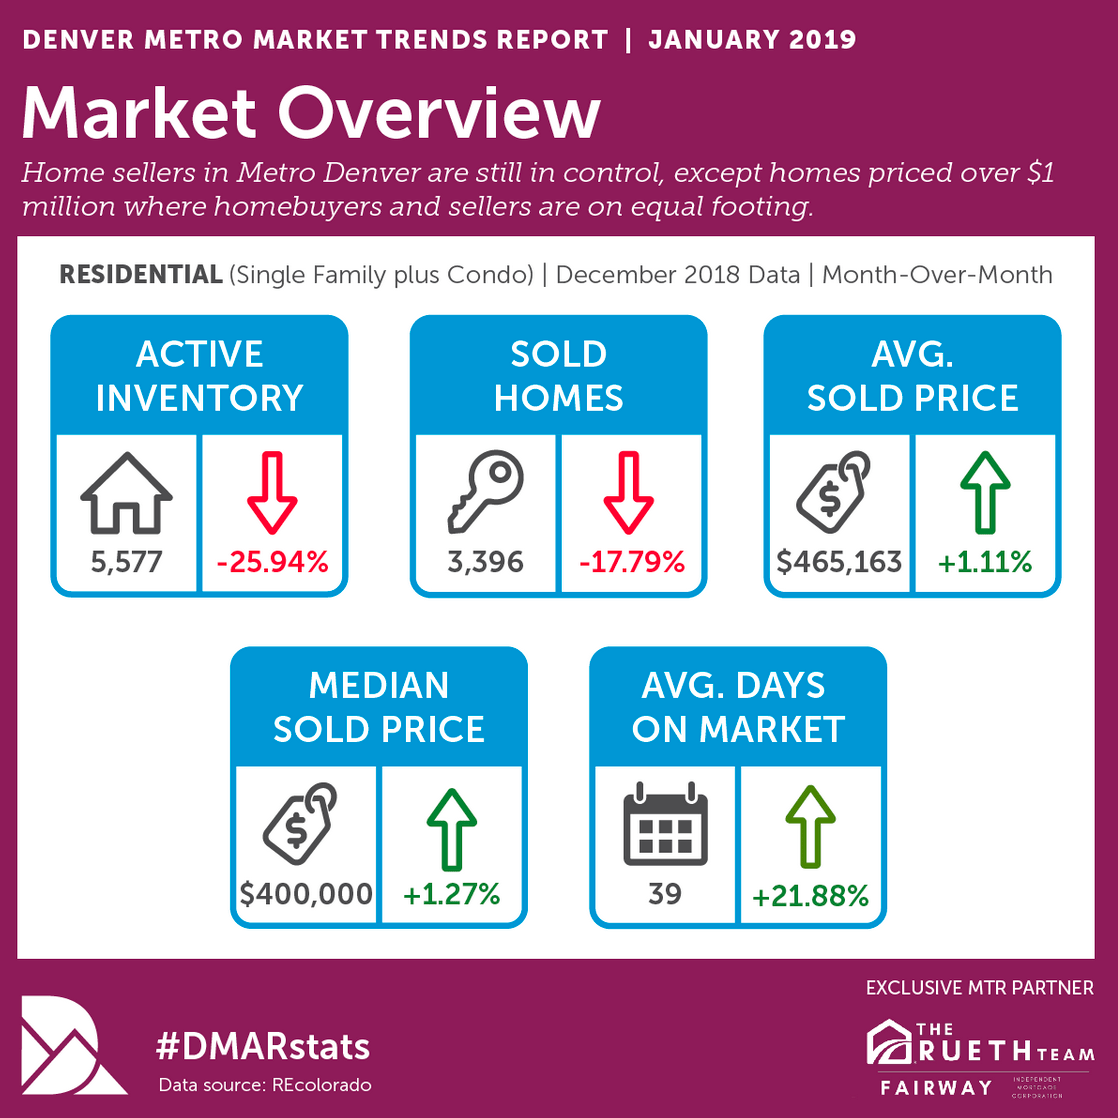 2019 Q1: Will The Real Estate Market Heat Up in 2019?